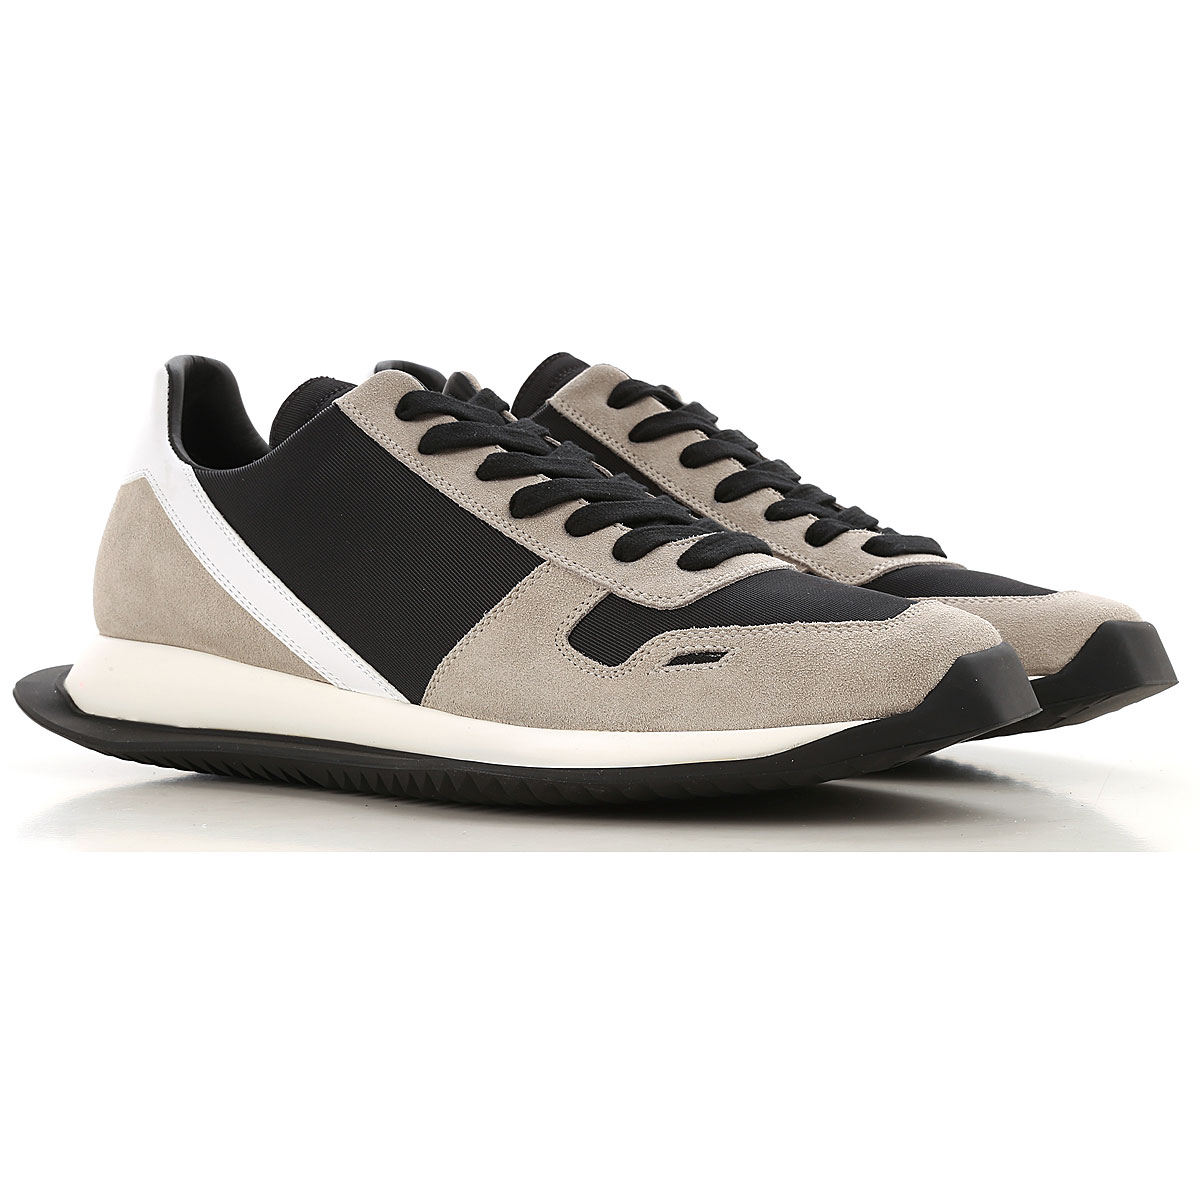 Rick Owens Sneakers for Men On Sale in Outlet, Black, suede, 2019, 6.5 7.5 7.75 8